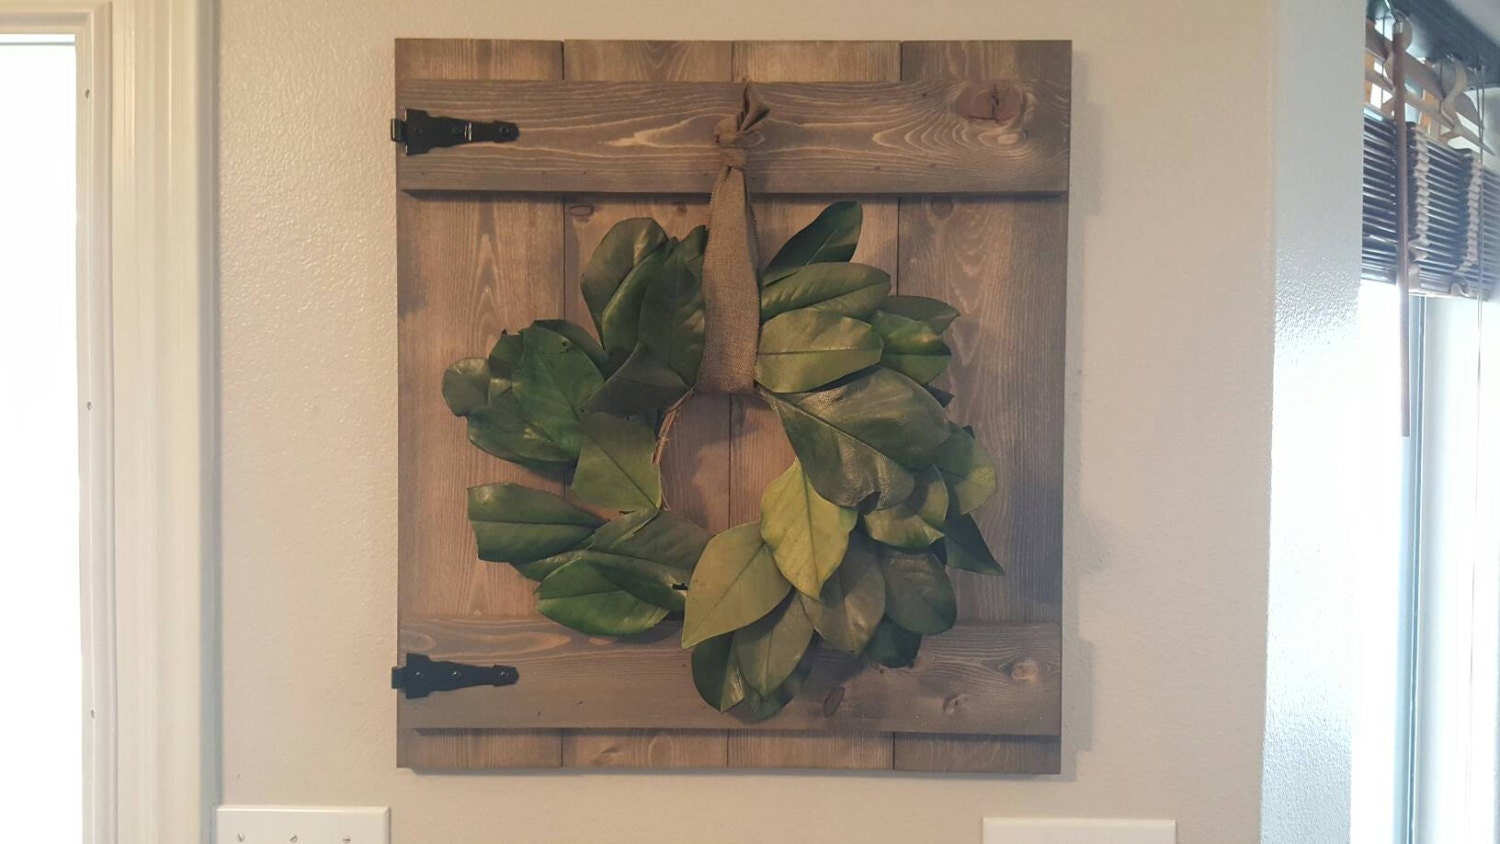 Rustic Bar Wall Decor : Rustic barn door wall hanging wreath hanger decor great